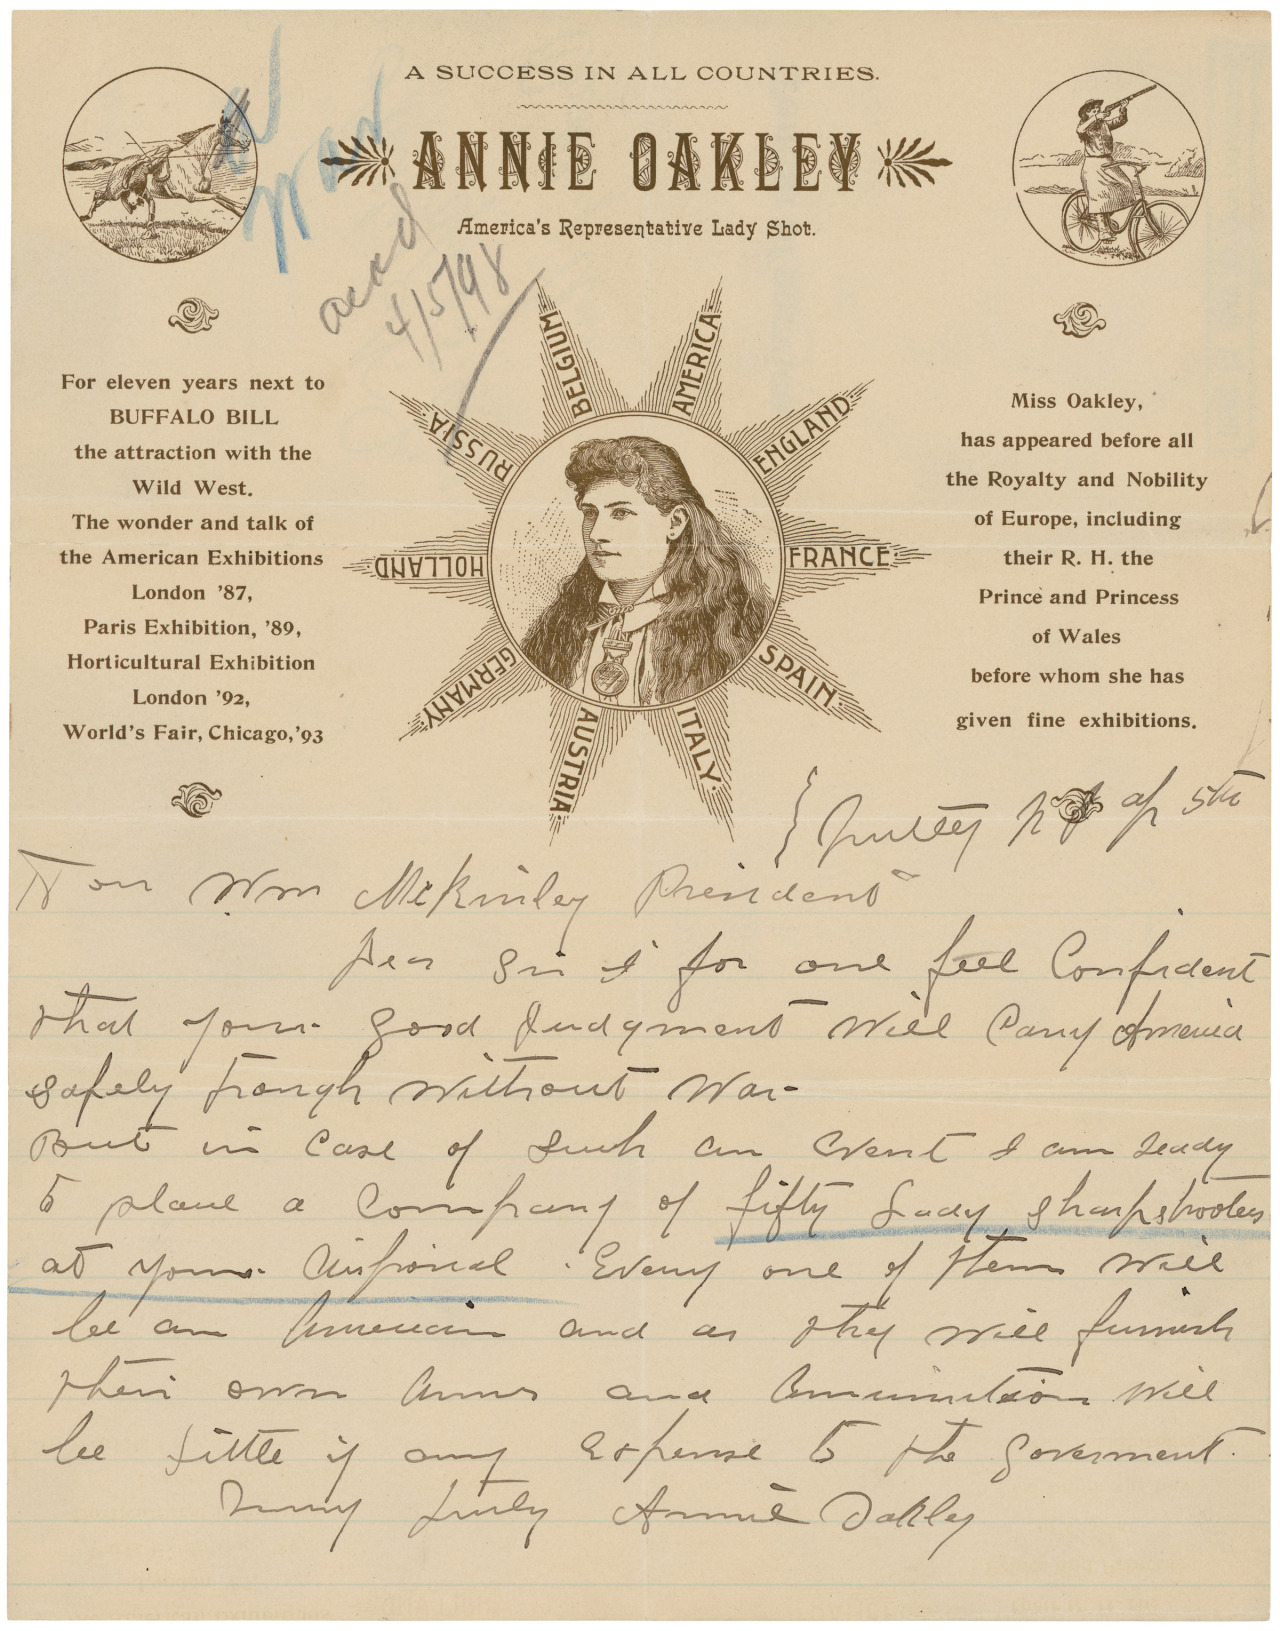 """…I am ready to place a company of fifty lady sharpshooters at your disposal.""   usnatarchivesexhibits:  Letter to President William McKinley from Annie Oakley in which she offers the services of a company of fifty lady American sharpshooters who would provide their own arms and ammunition, to the government should war break out with Spain., 04/05/1898 - 04/05/1898 Item from Records of the Adjutant General's Office. (03/04/1907 - 09/18/1947) Don't forget—the National Archives' new exhibition ""Making Their Mark: Stories Through Signatures"" opens March 21, 2014. Source: http://go.usa.gov/DykQ"